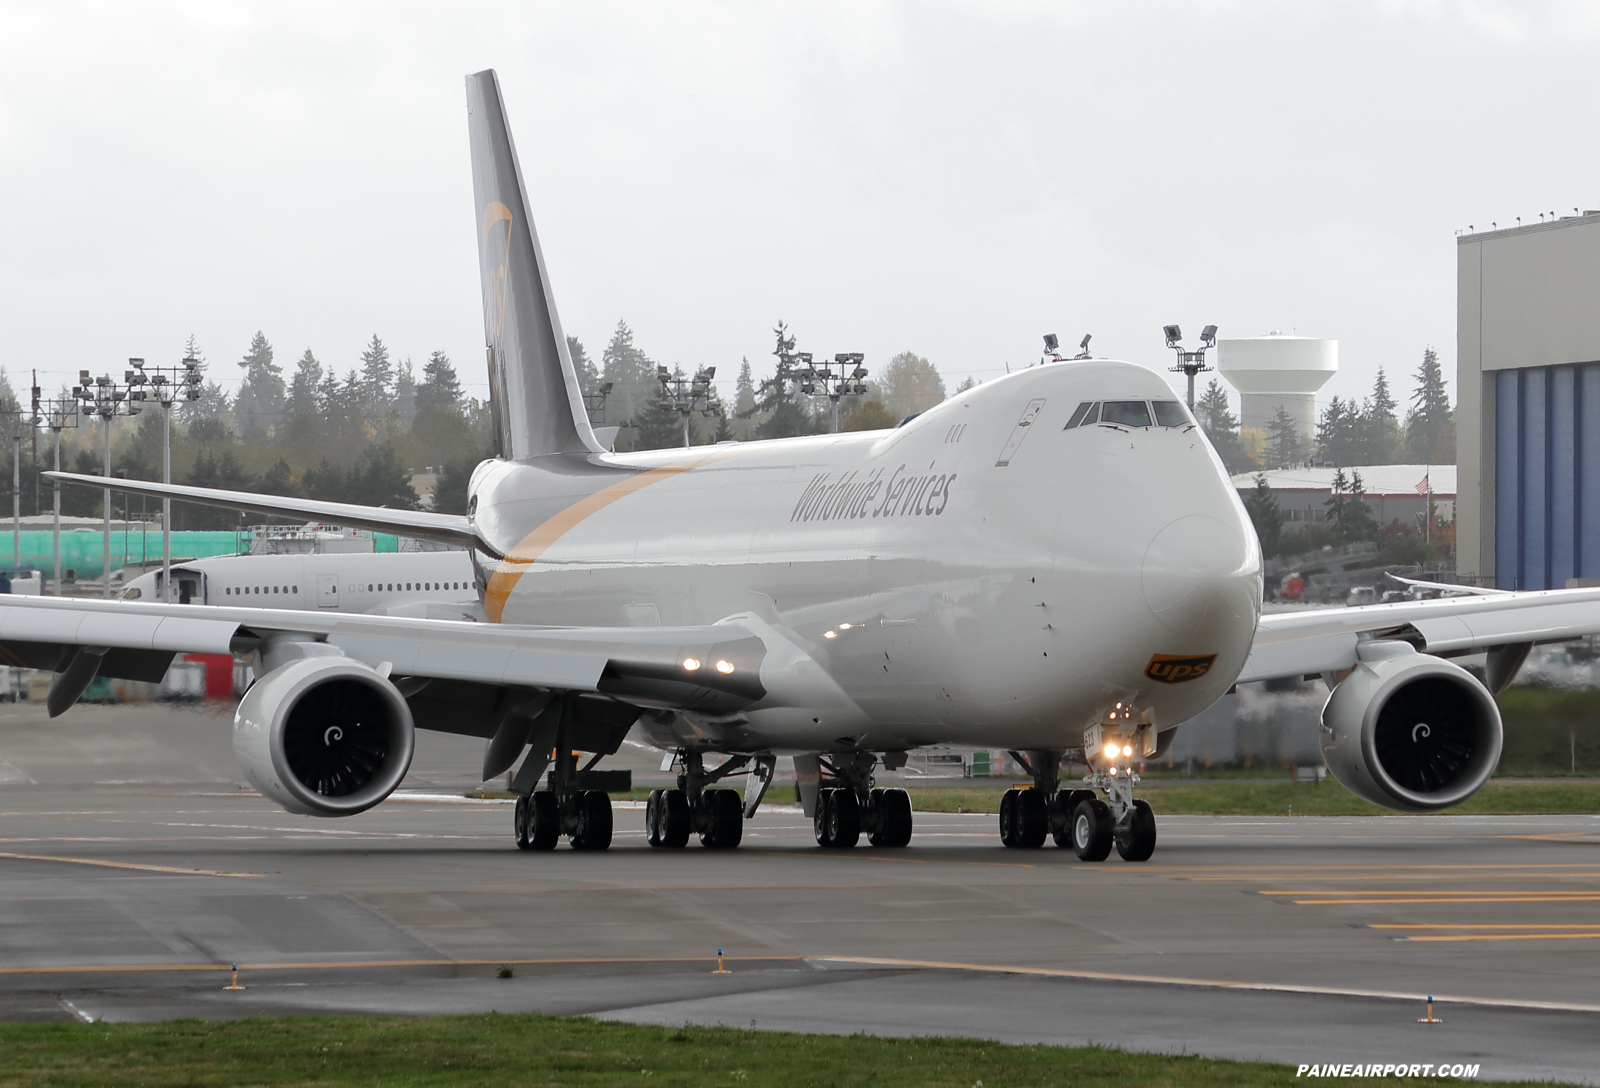 UPS 747-8F N623UP at KPAE Paine Field